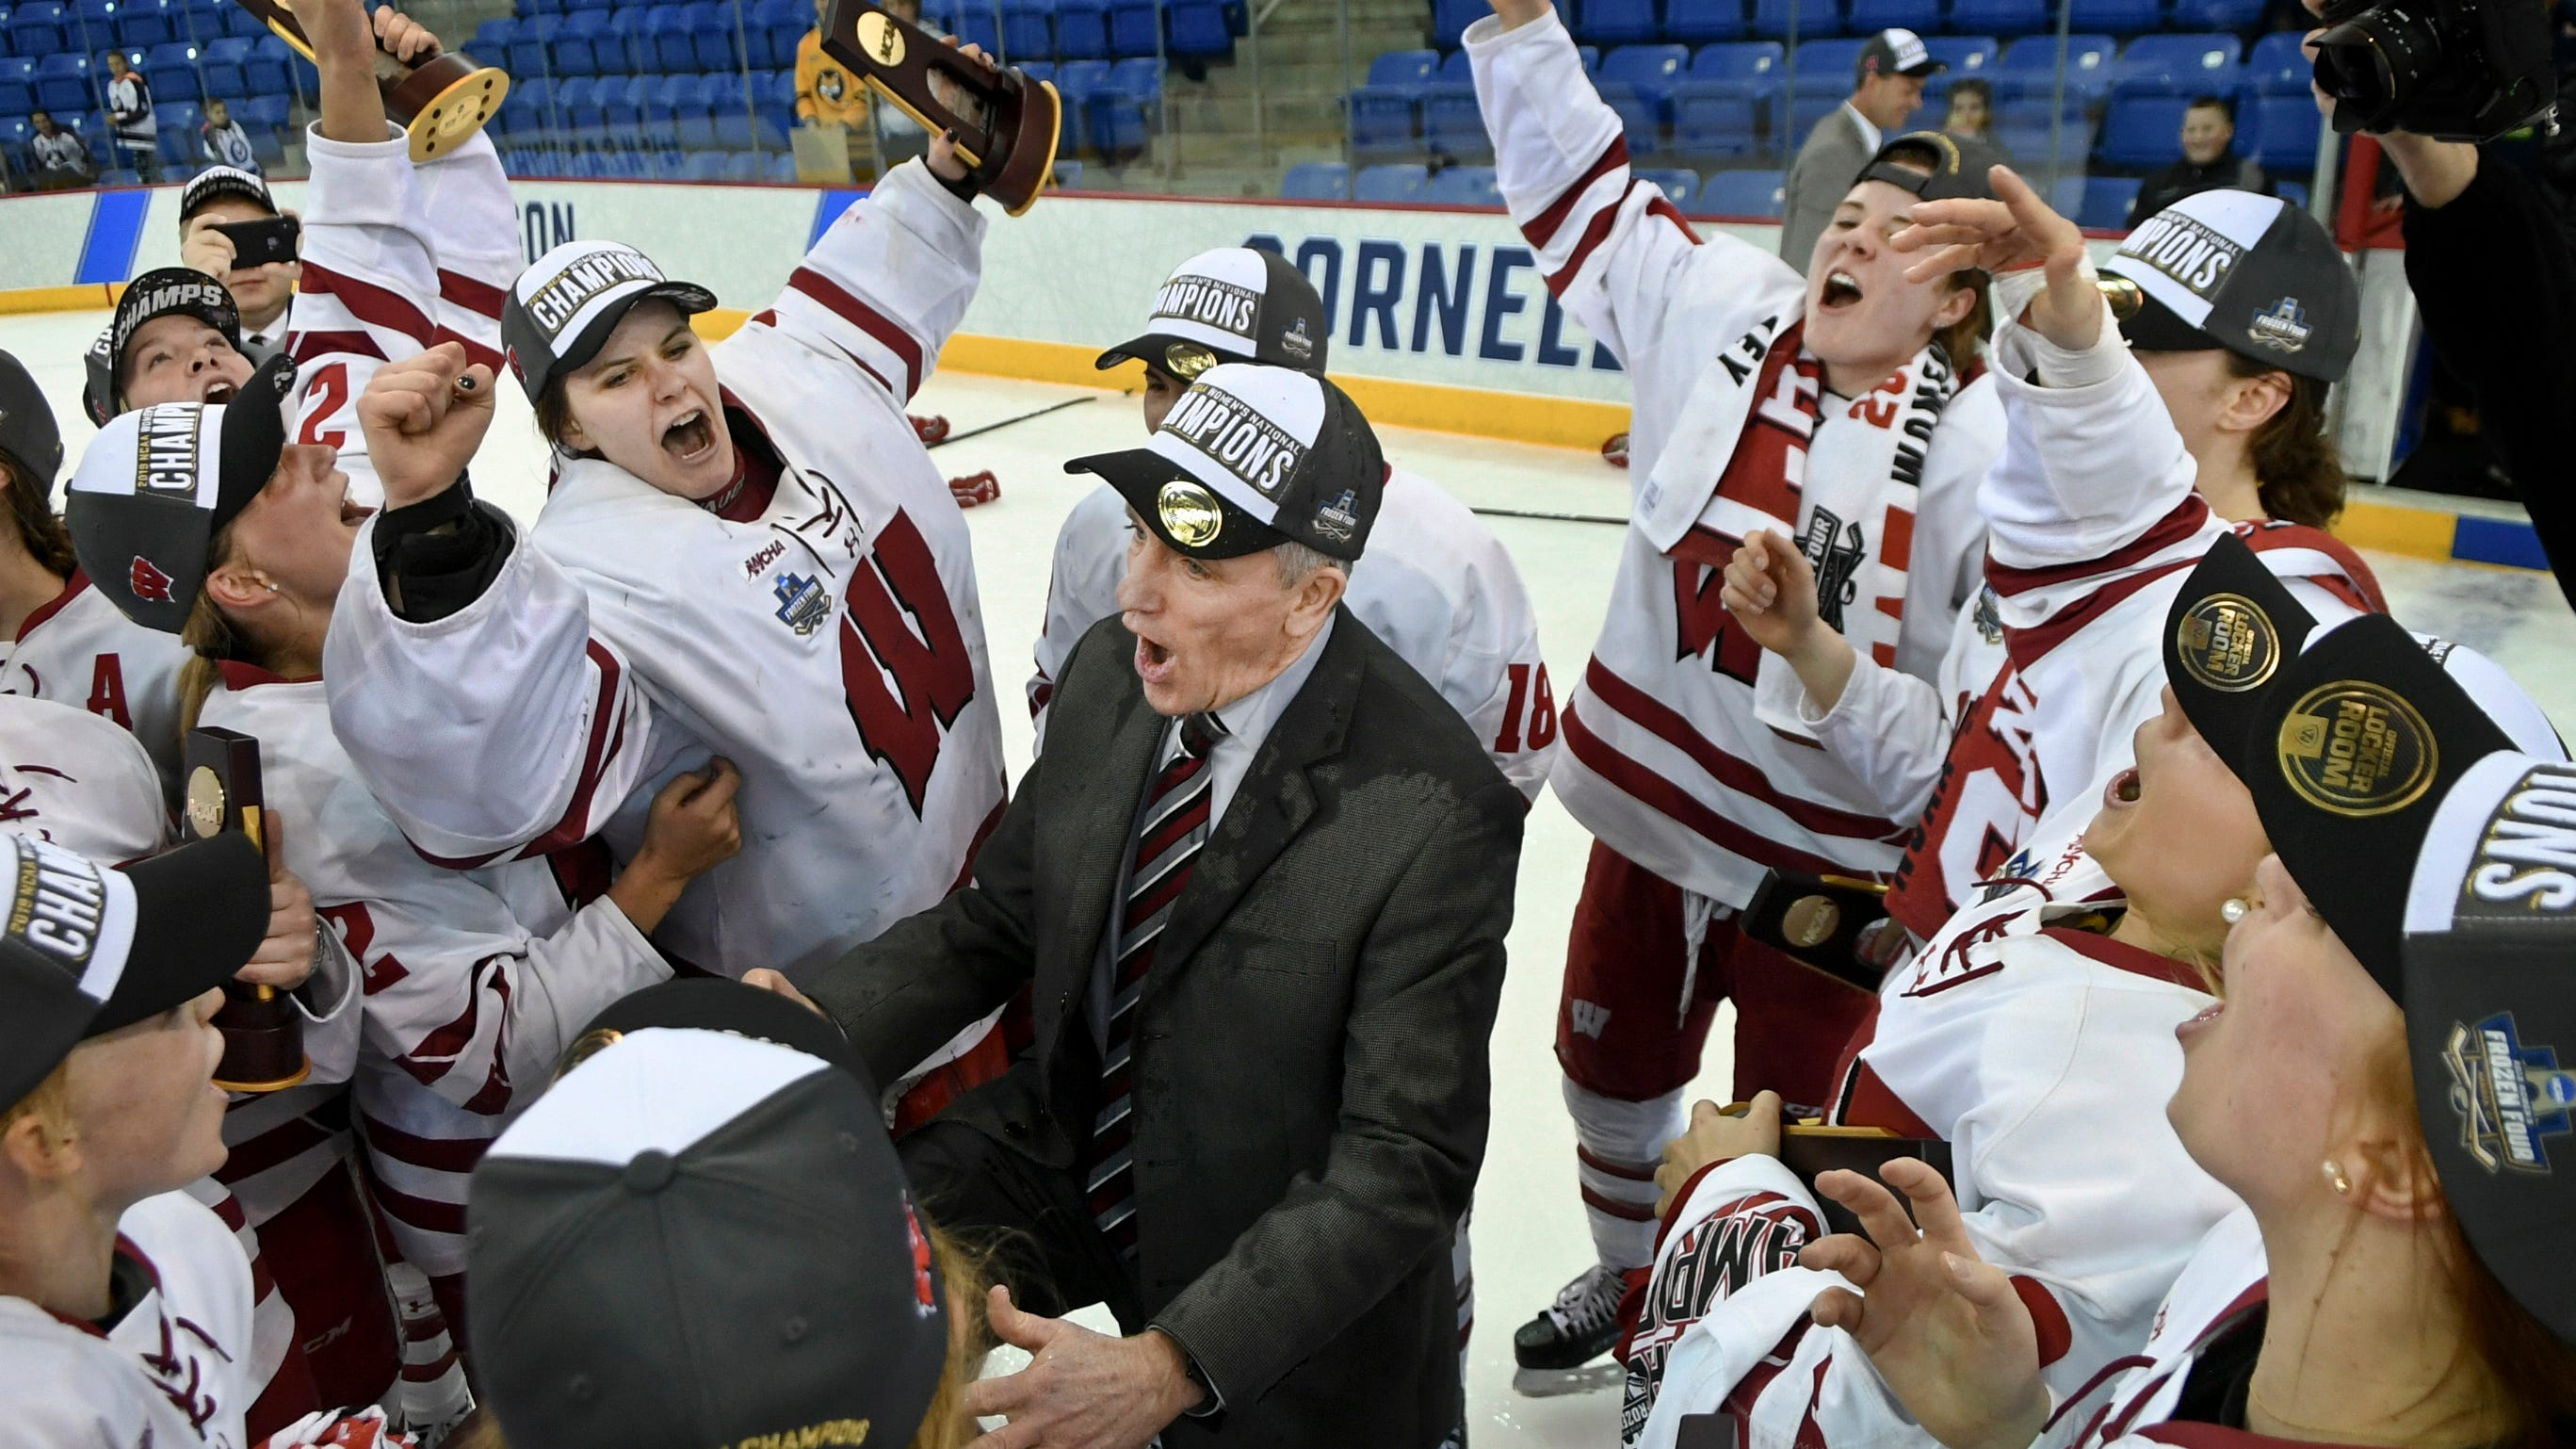 Wisconsin coach Mark Johnson is surrounded by his team as they celebrate after defeating Minnesota 2-0 for the NCAA Division I women's Frozen Four hockey championship Sunday, March 24, 2019, in Hamden, Conn. (AP Photo/Stephen Dunn) ORG XMIT: CTSD112